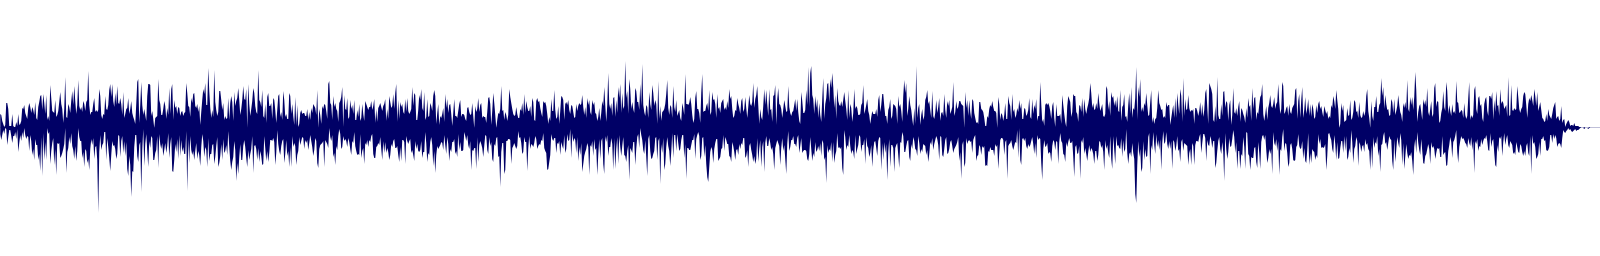 waveform of track #91844